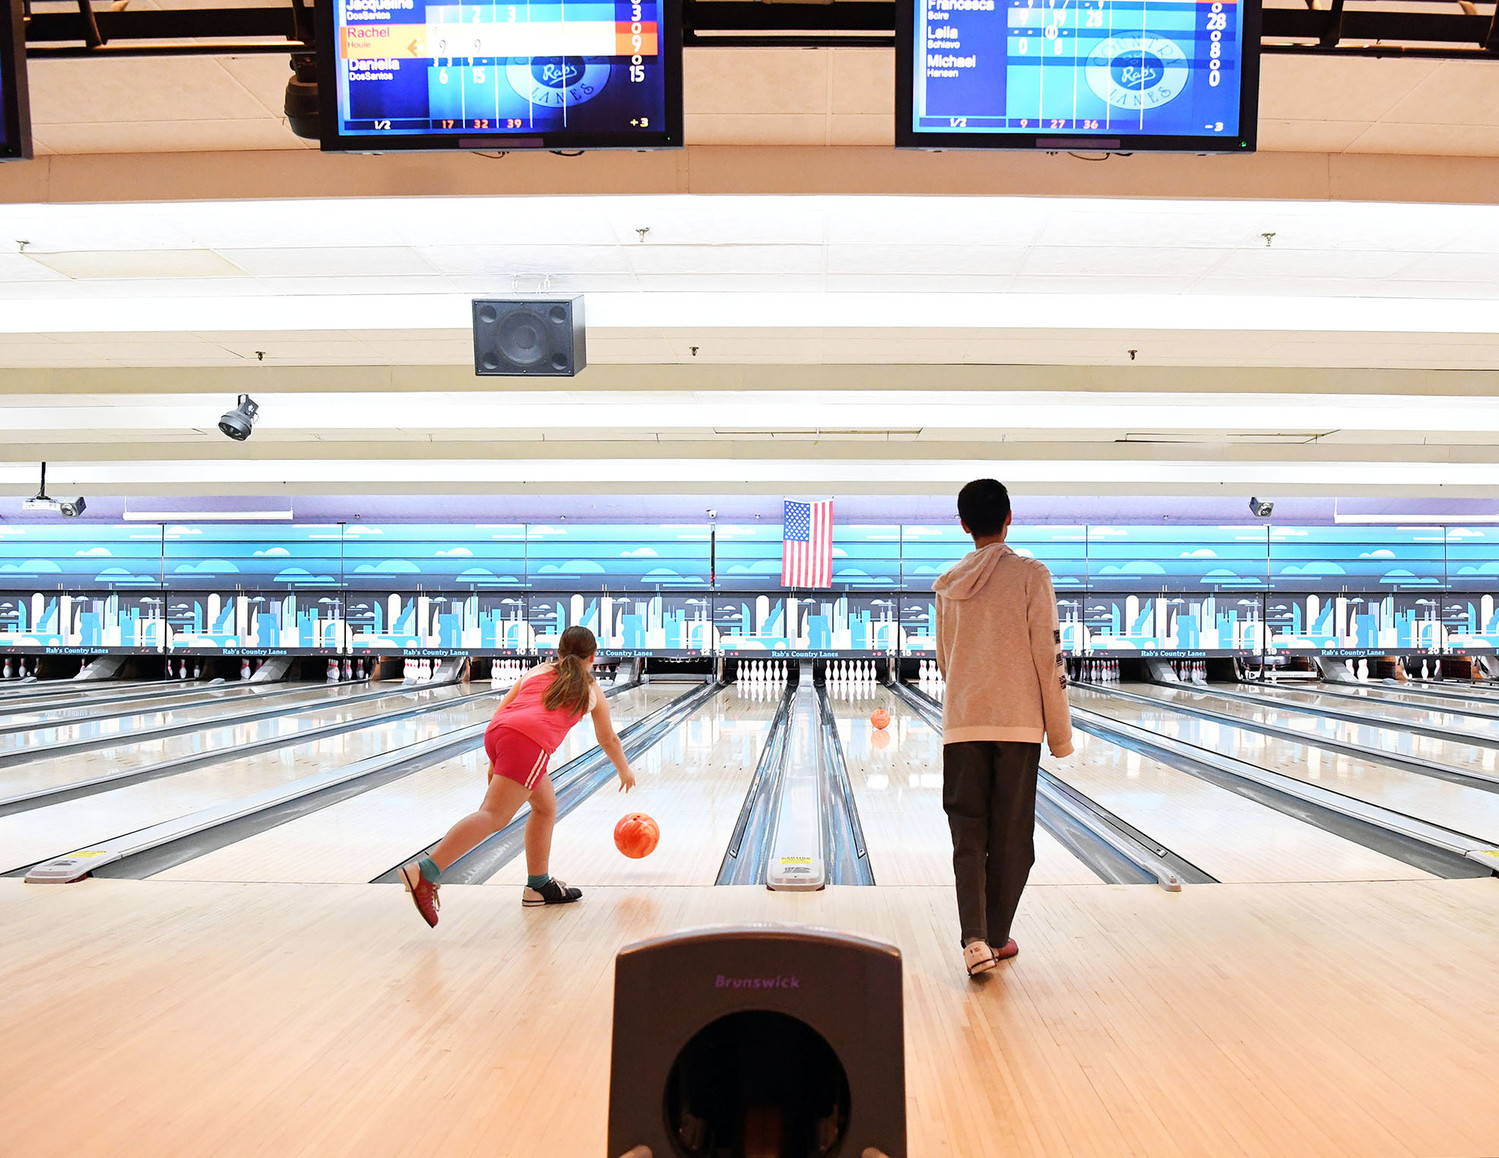 Bowlers aim for strikes during Staten Island CYO bowling league action at Rab's Country Lanes on Staten Island April 17. Staten Island CYO started last fall its fun and popular bowling program, the only CYO bowling league in the archdiocese.